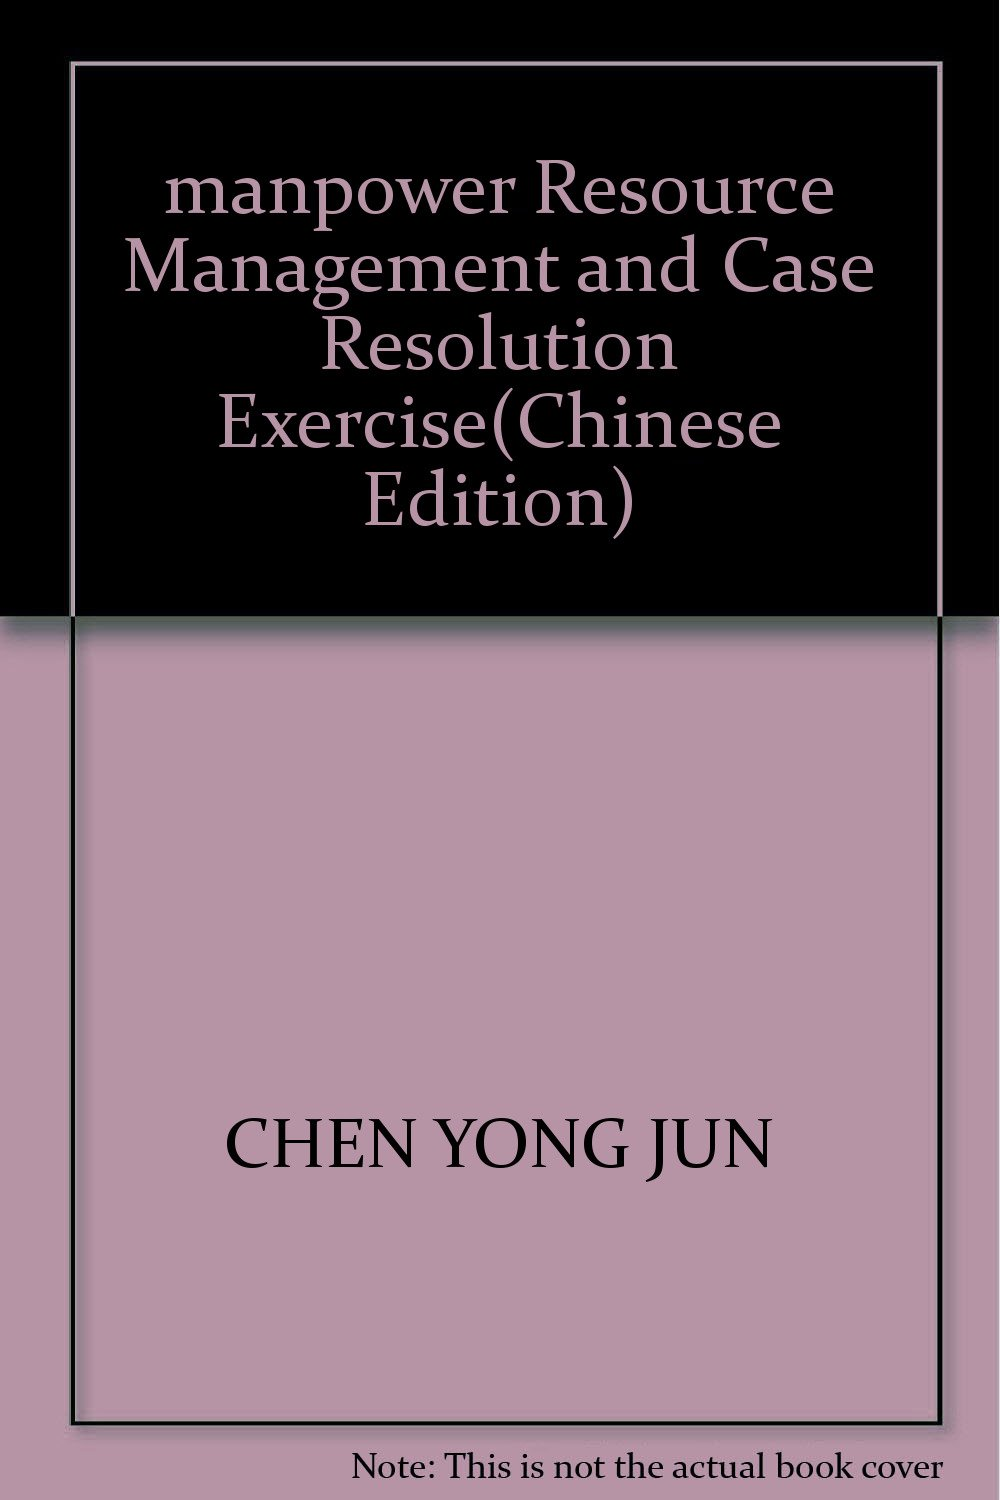 manpower Resource Management and Case Resolution Exercise(Chinese Edition) PDF